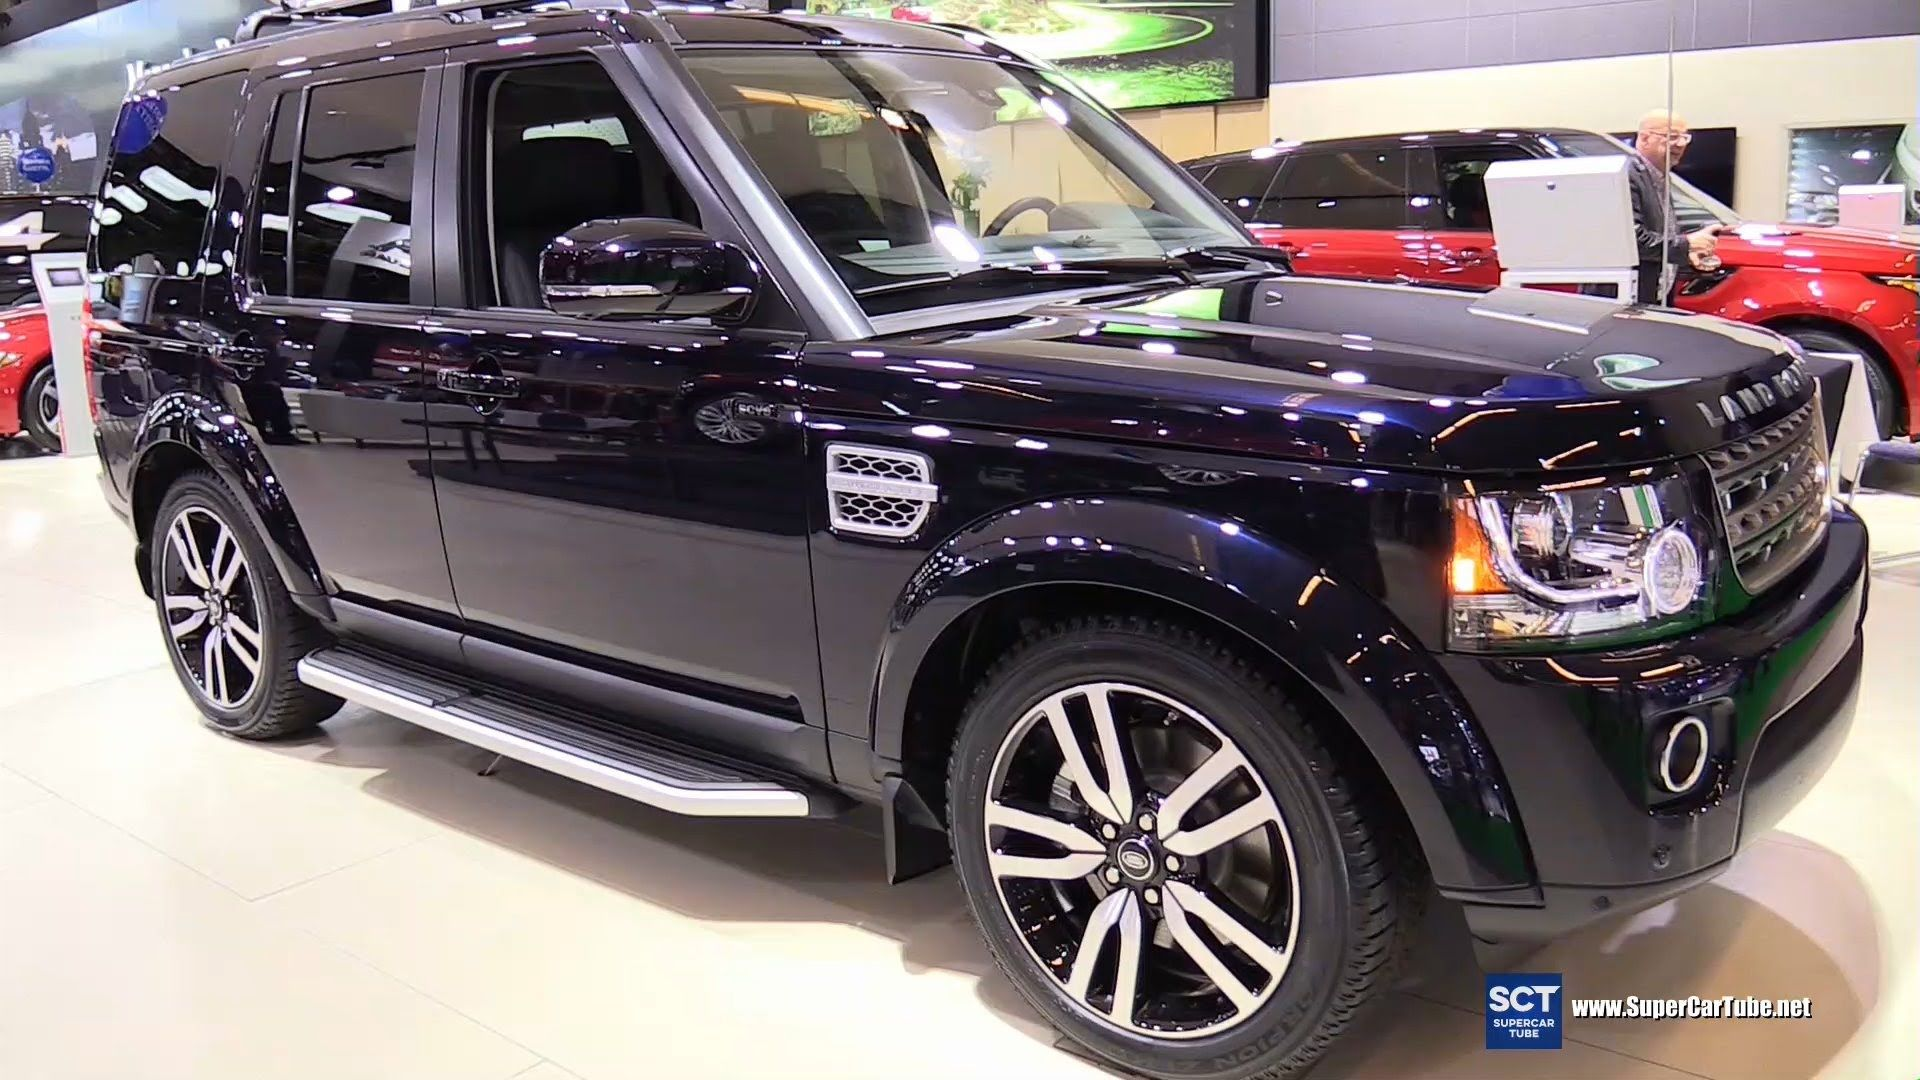 2016 Land Rover Lr4 Hse Luxury Exterior And Interior Walkaround Review 2016 Montreal Auto Show Land Rover Luxury Exterior Europe Car